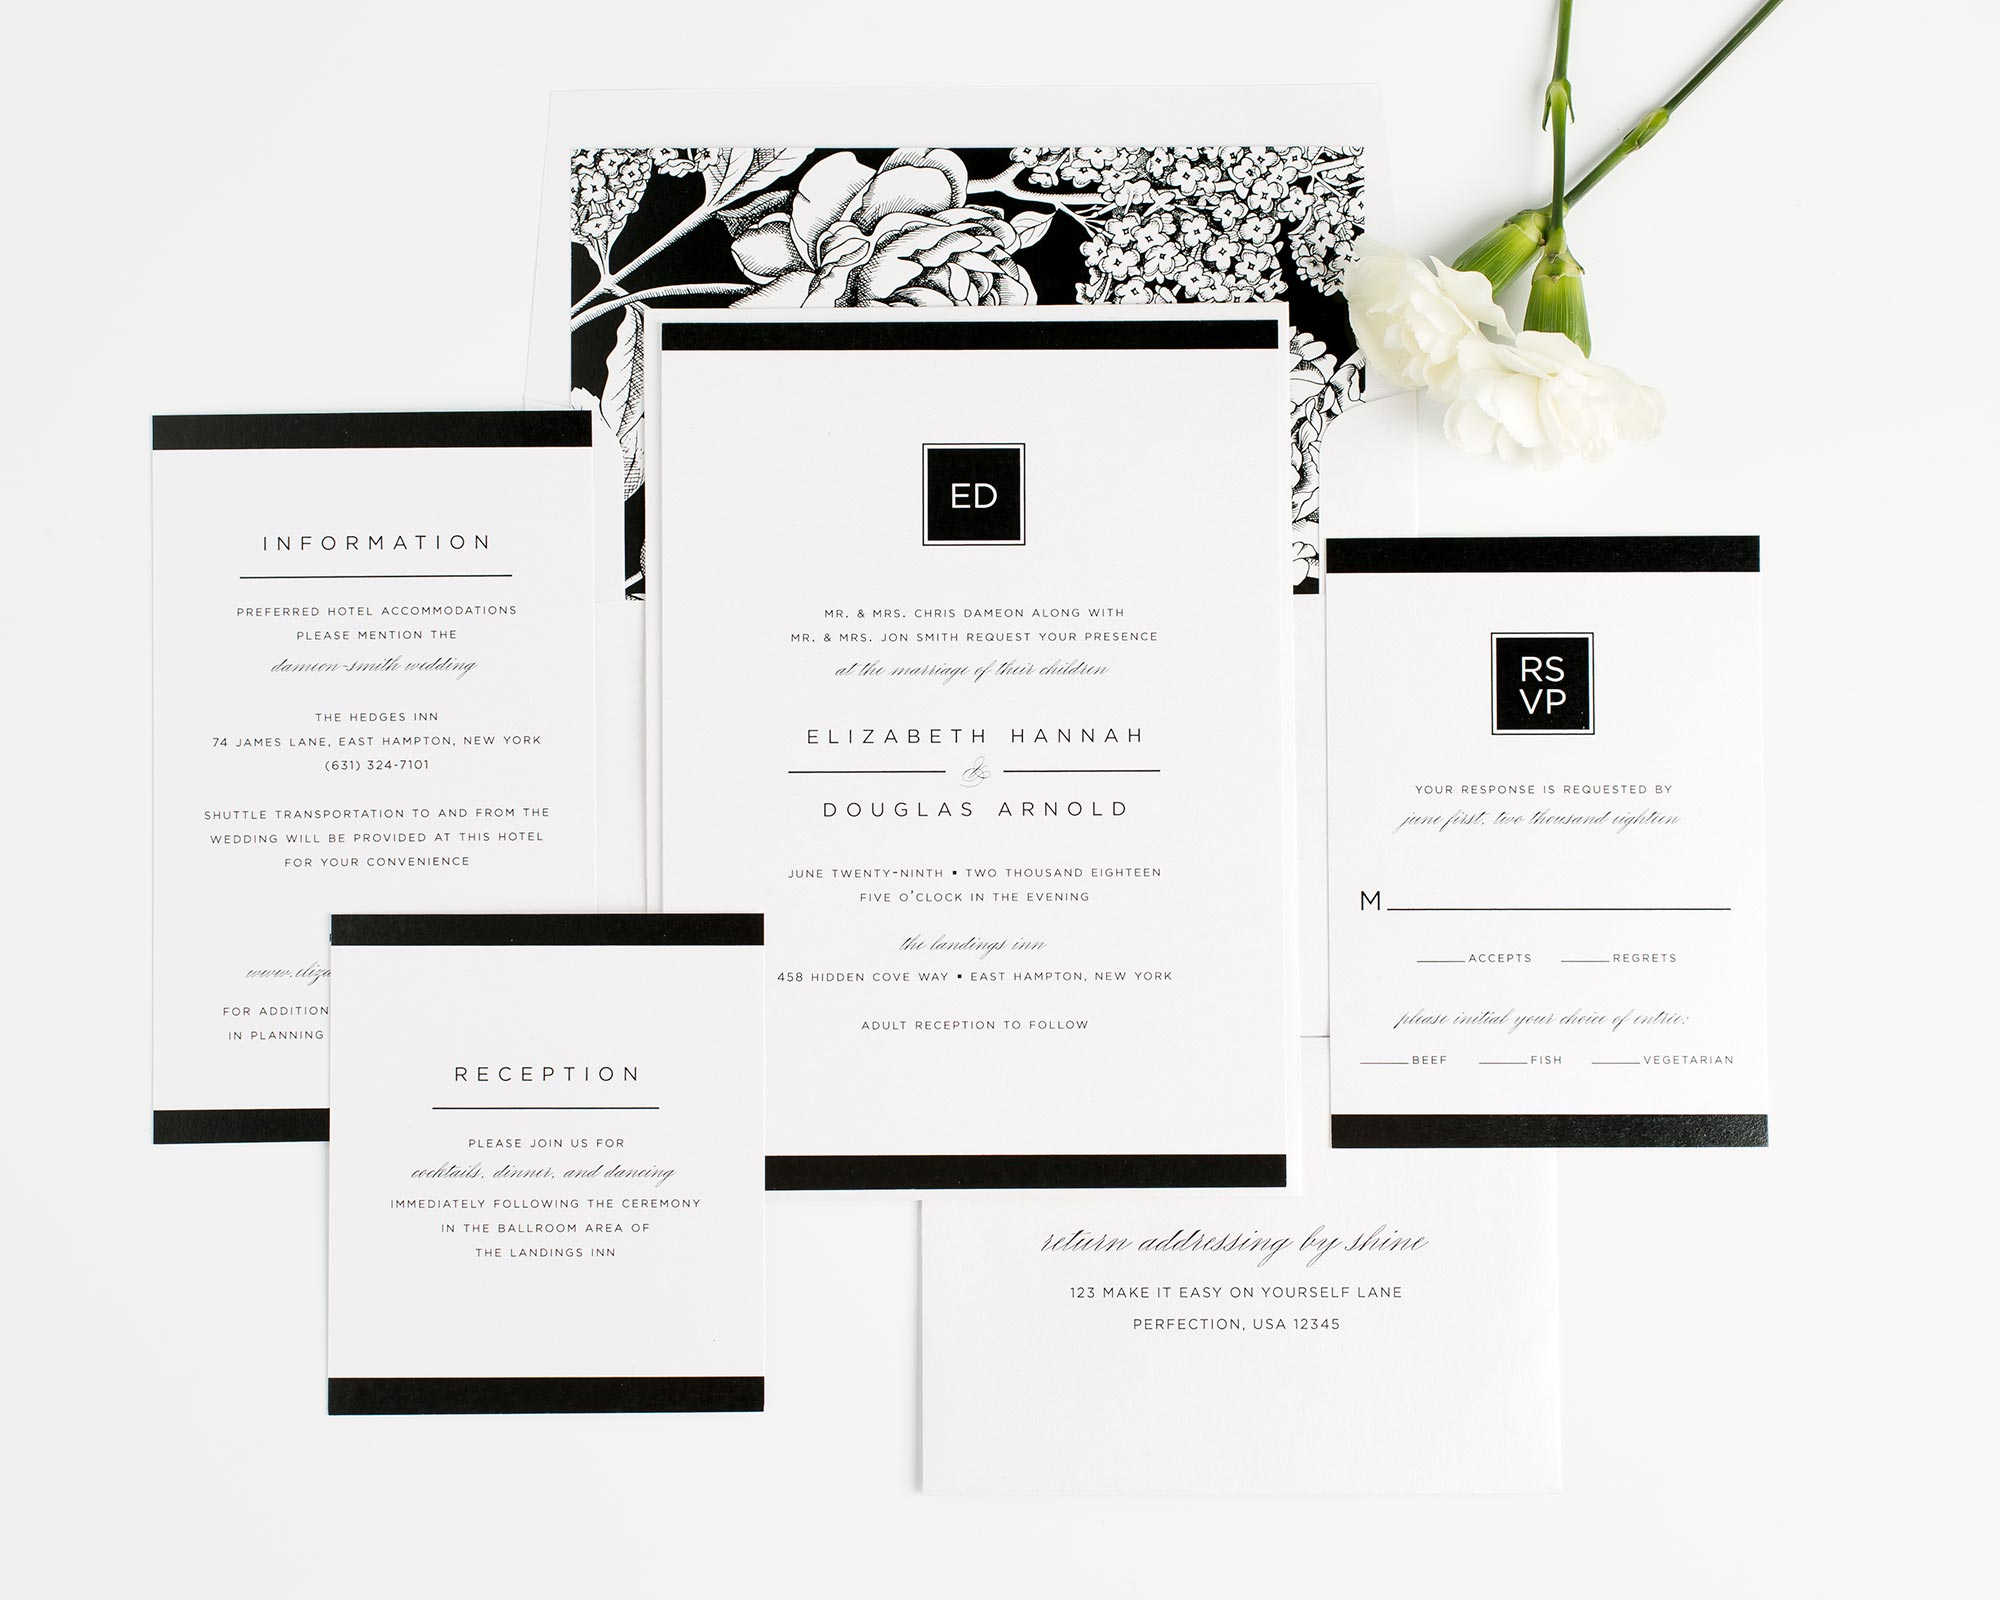 Modern and Glamorous Wedding Invitations in Black and White with a Floral Envelope Liner